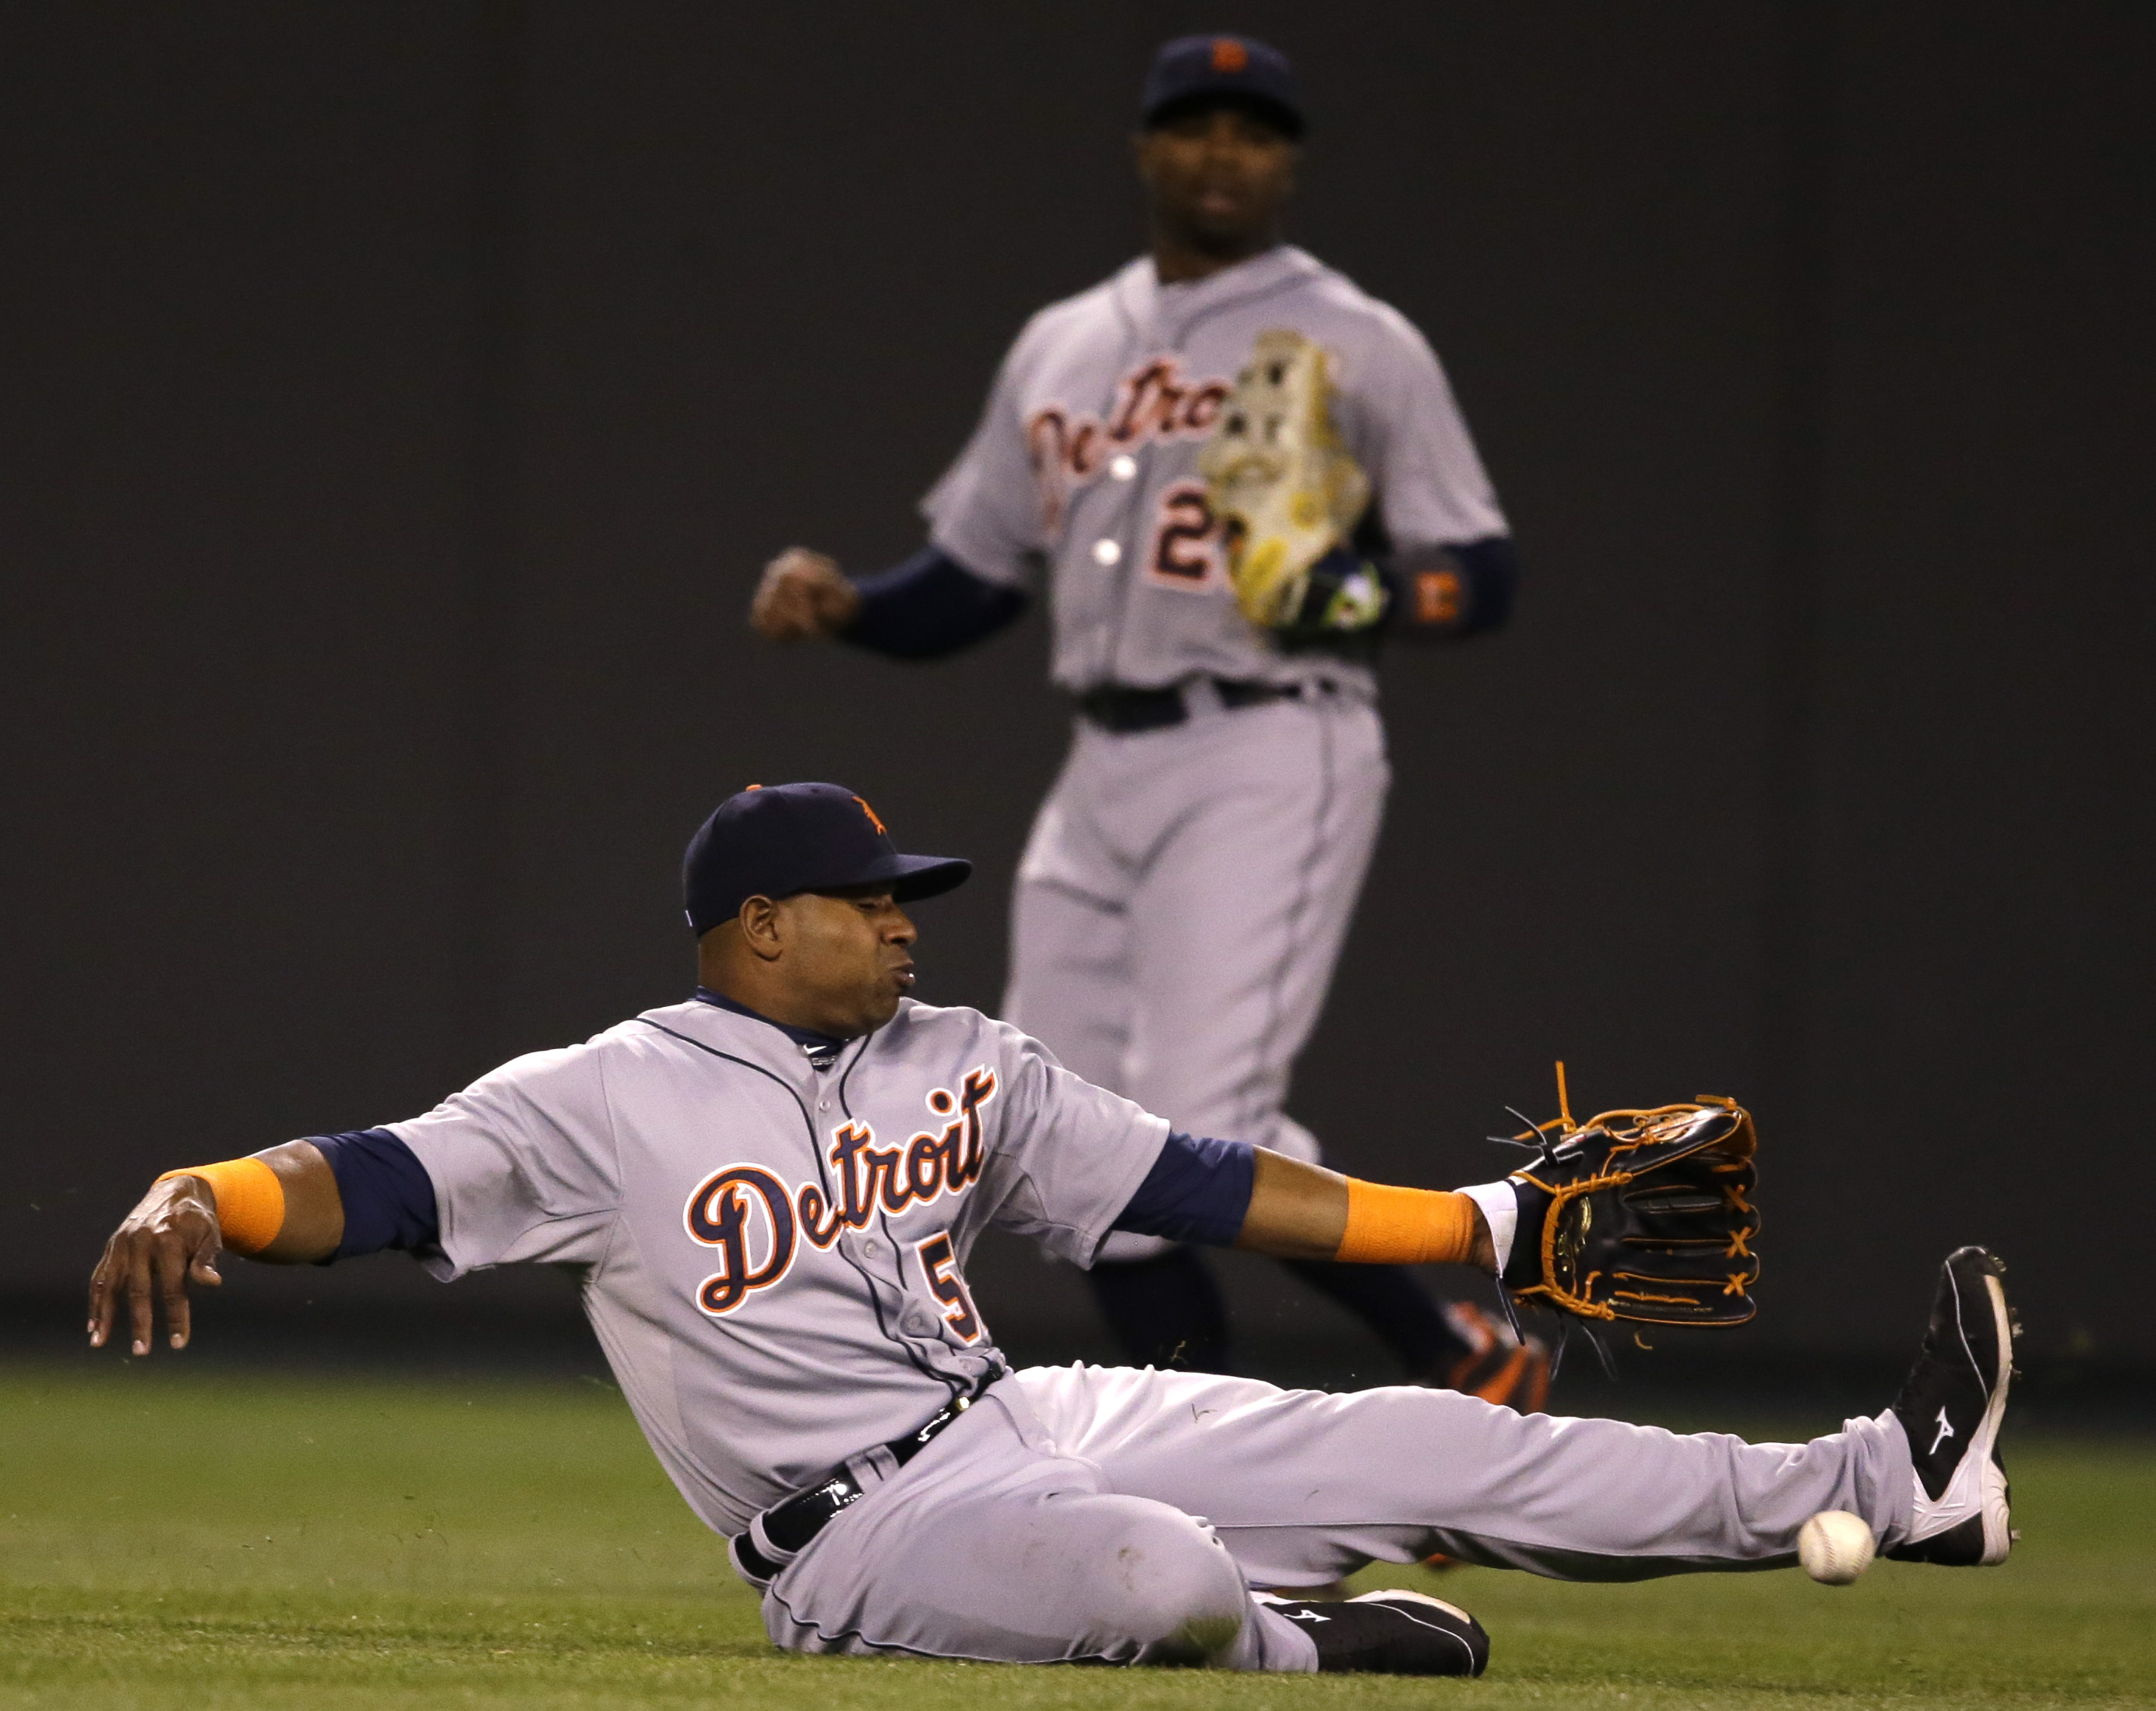 Detroit Tigers left fielder Yoenis Cespedes (52) misses a fly ball hit by Kansas City Royals' Omar Infante during the seventh inning of a baseball game at Kauffman Stadium in Kansas City, Mo., Thursday, April 30, 2015. Infante singled on the play. Detroit